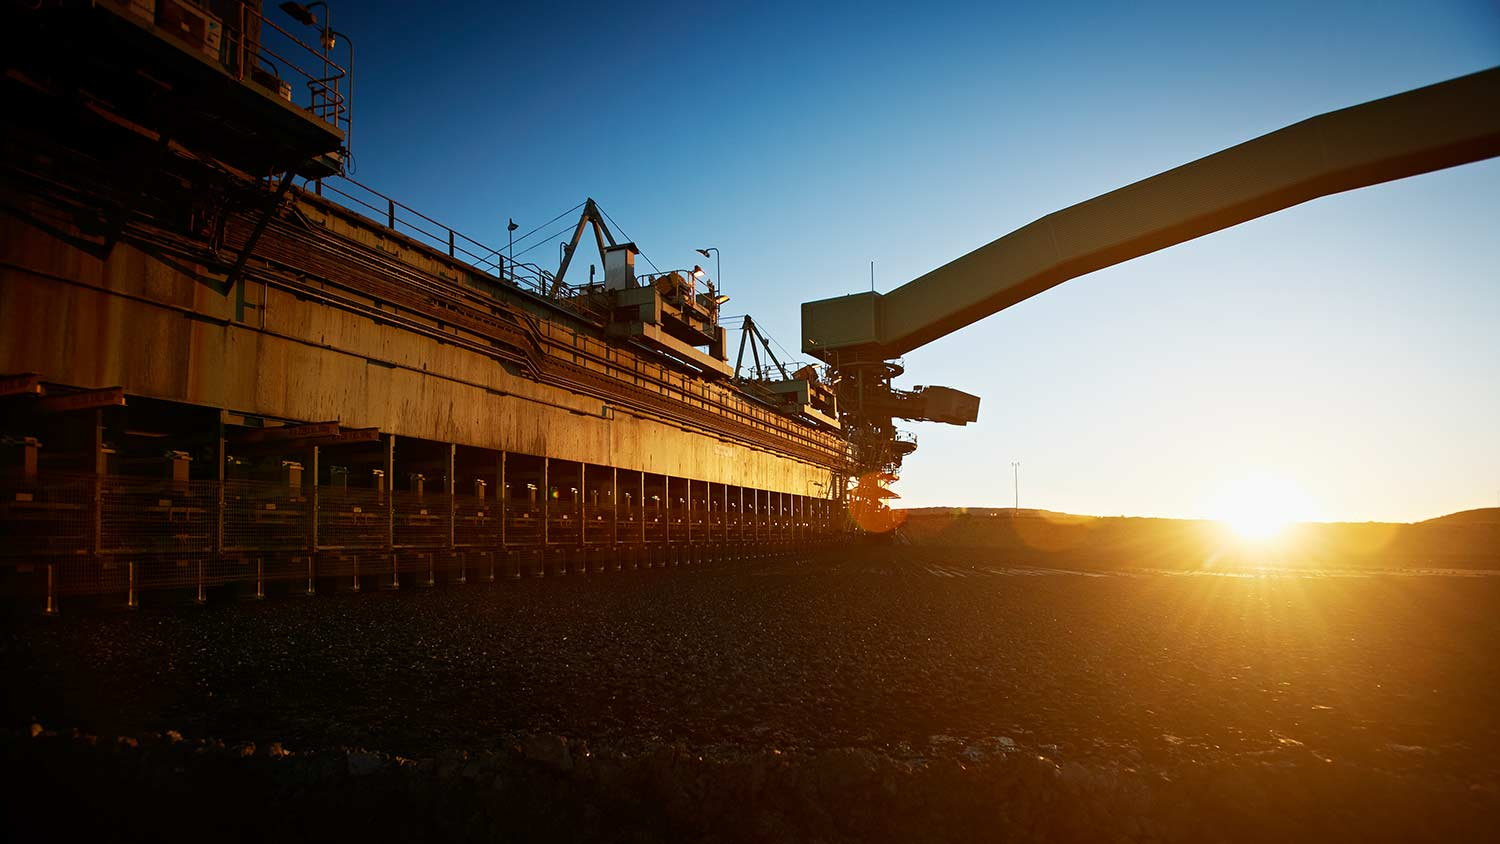 Coal output from top 10 miners to increase by up to 6.6% in 2021 – report